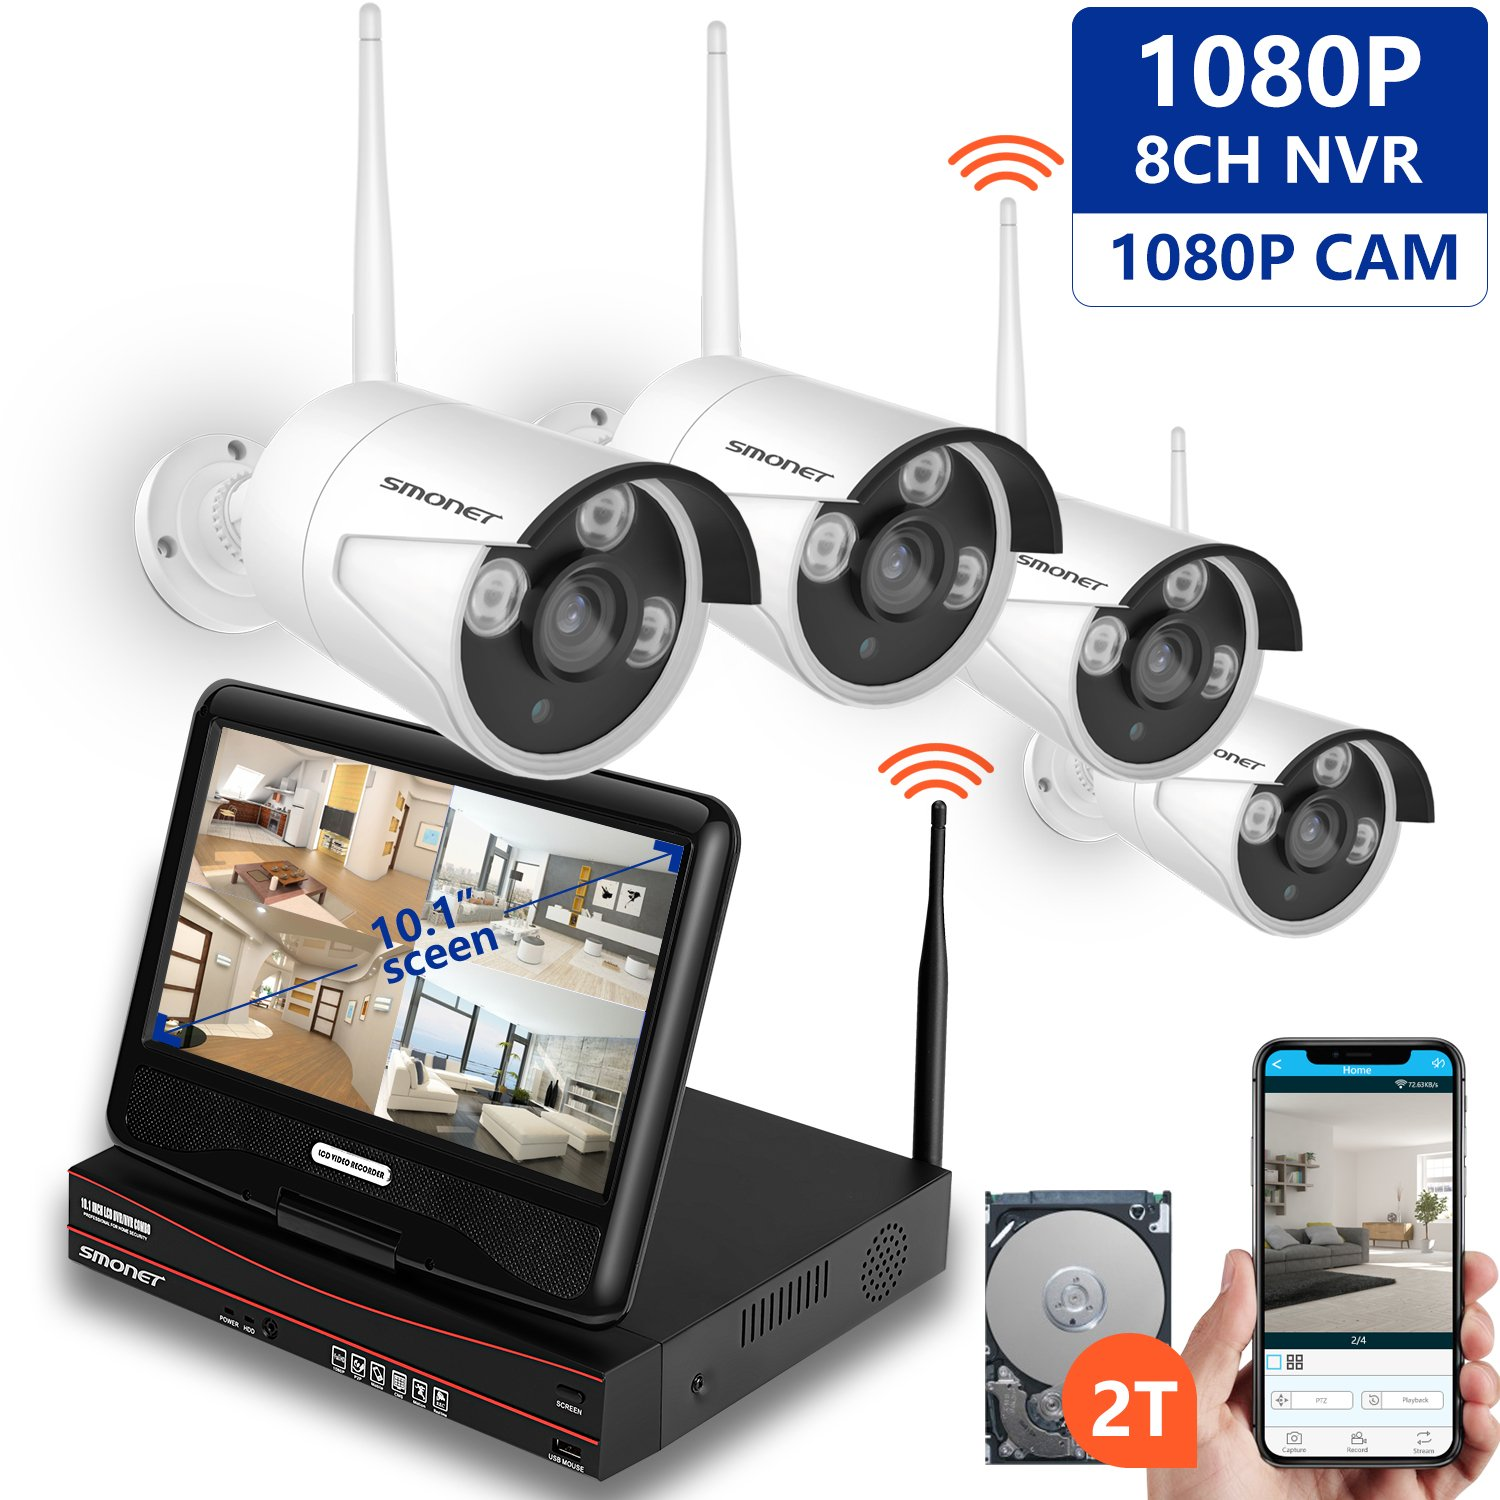 1080P Wireless Security Camera Systems,SMONET 8-Channel Video Security Systems(2TB Hard Drive,4pcs 1080P(2.0MP) Outdoor&Indoor Wireless IP Cameras,with 10.1inches Monitor,P2P,Easy Remote View,Free APP